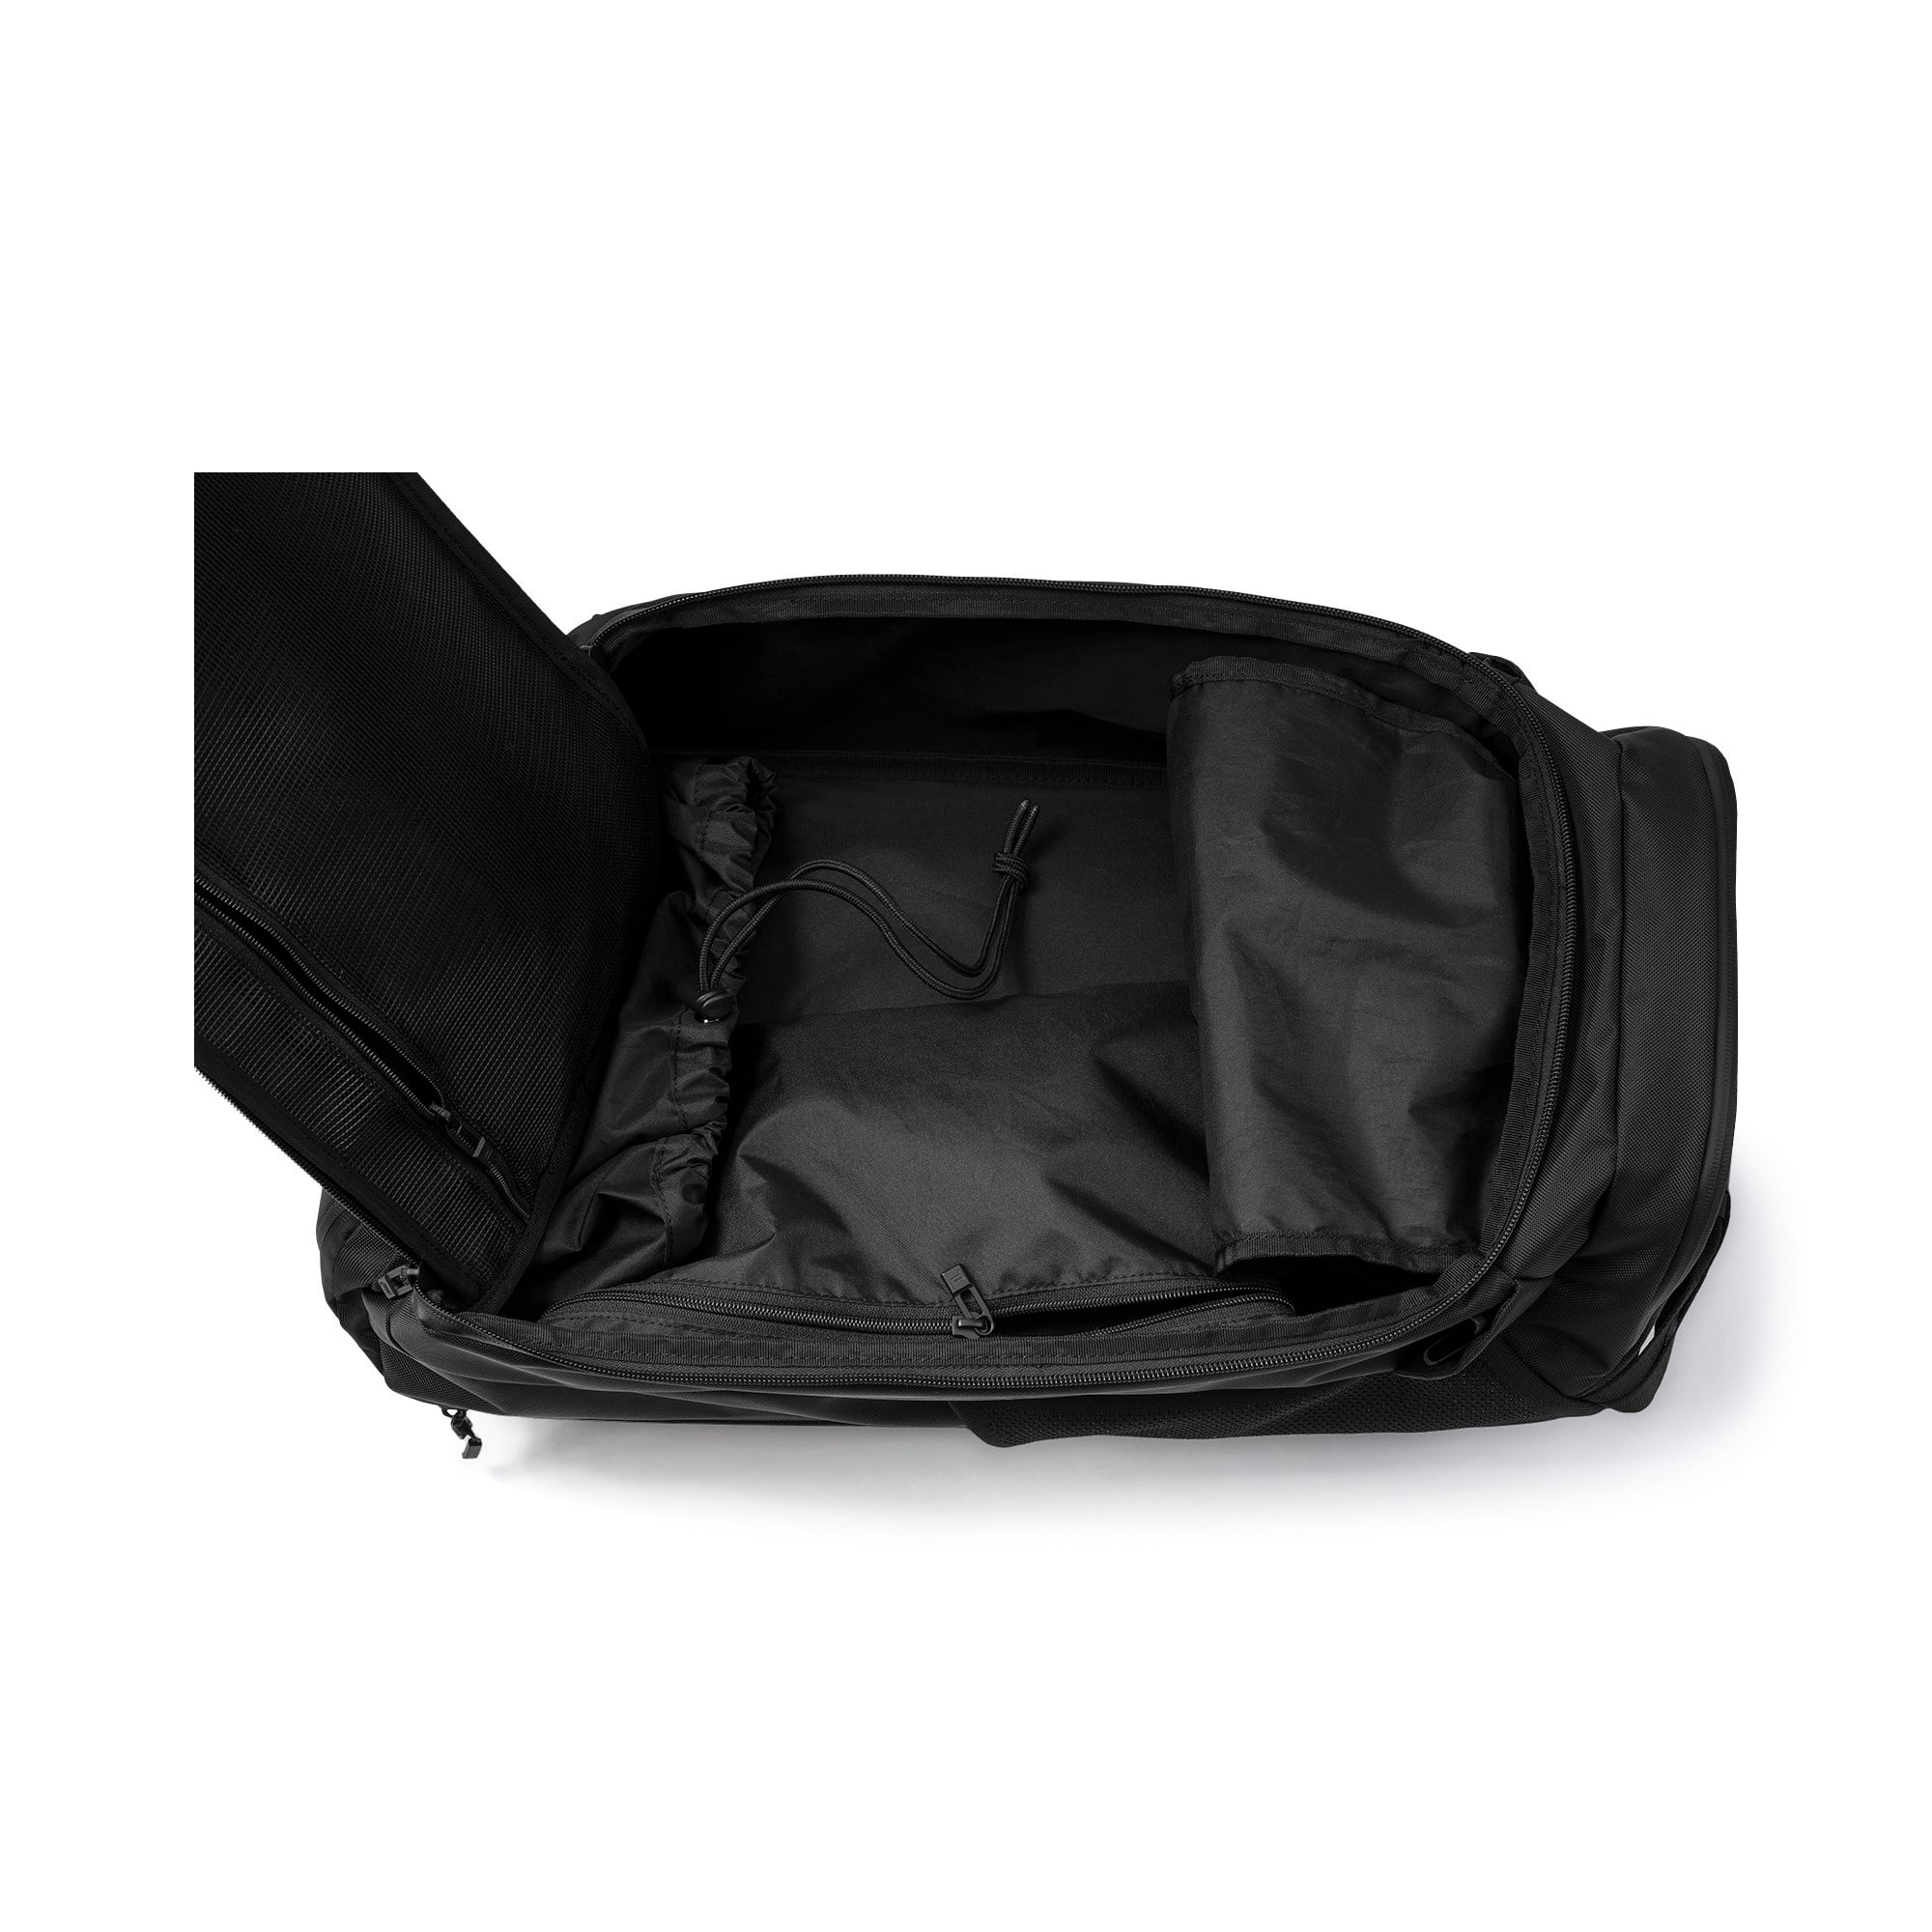 Thumbnail 4 of Porsche Design Gym Duffel Bag, Puma Black, medium